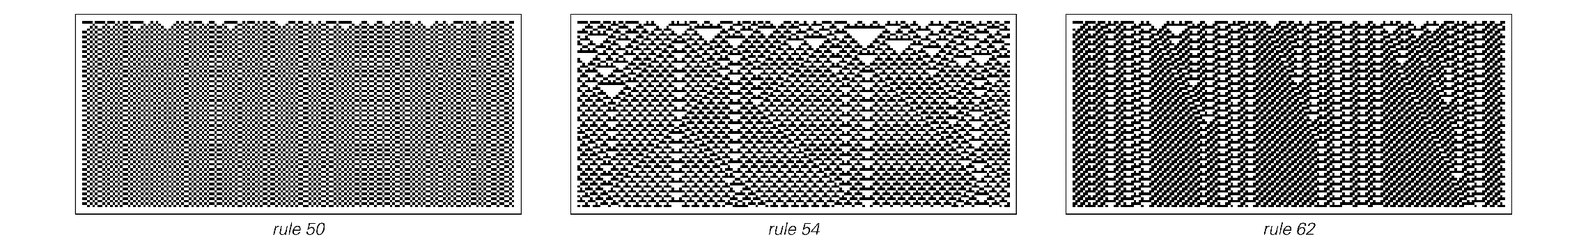 Cellular automata with walls remaining between domains of repetitive behavior